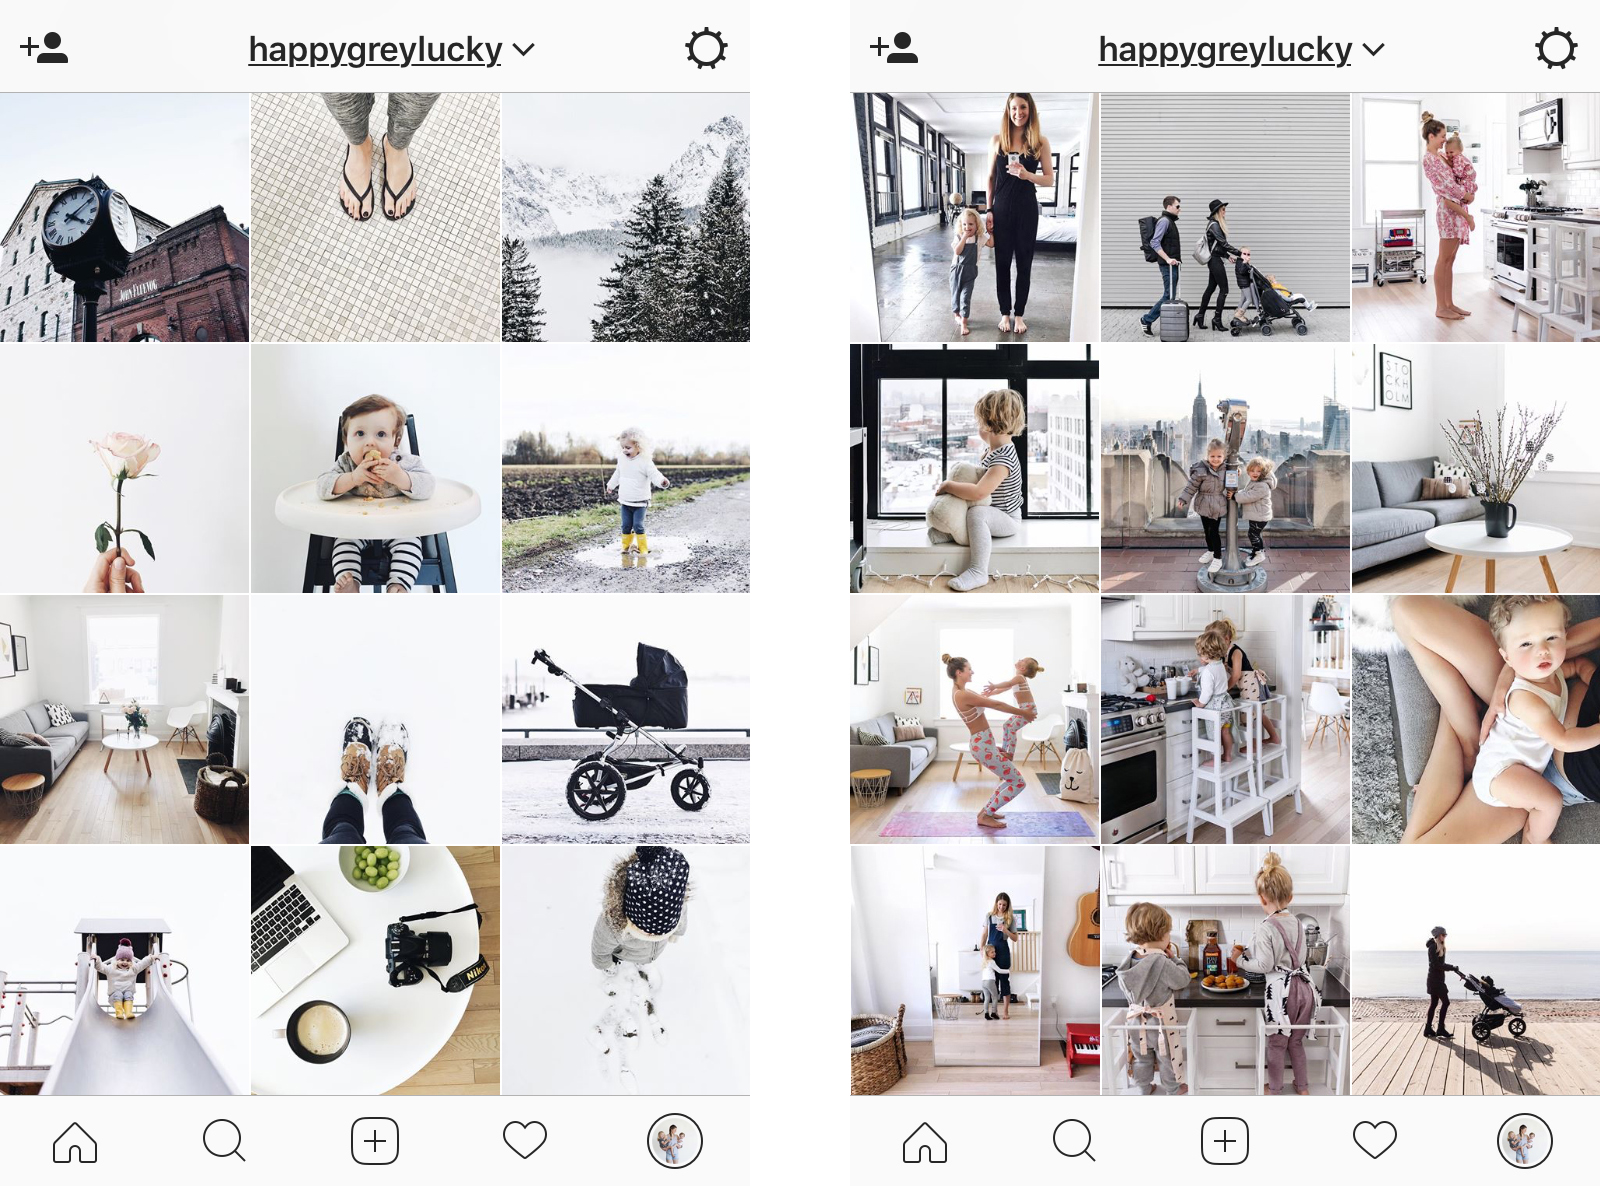 25 ways to grow your Instagram account quickly and